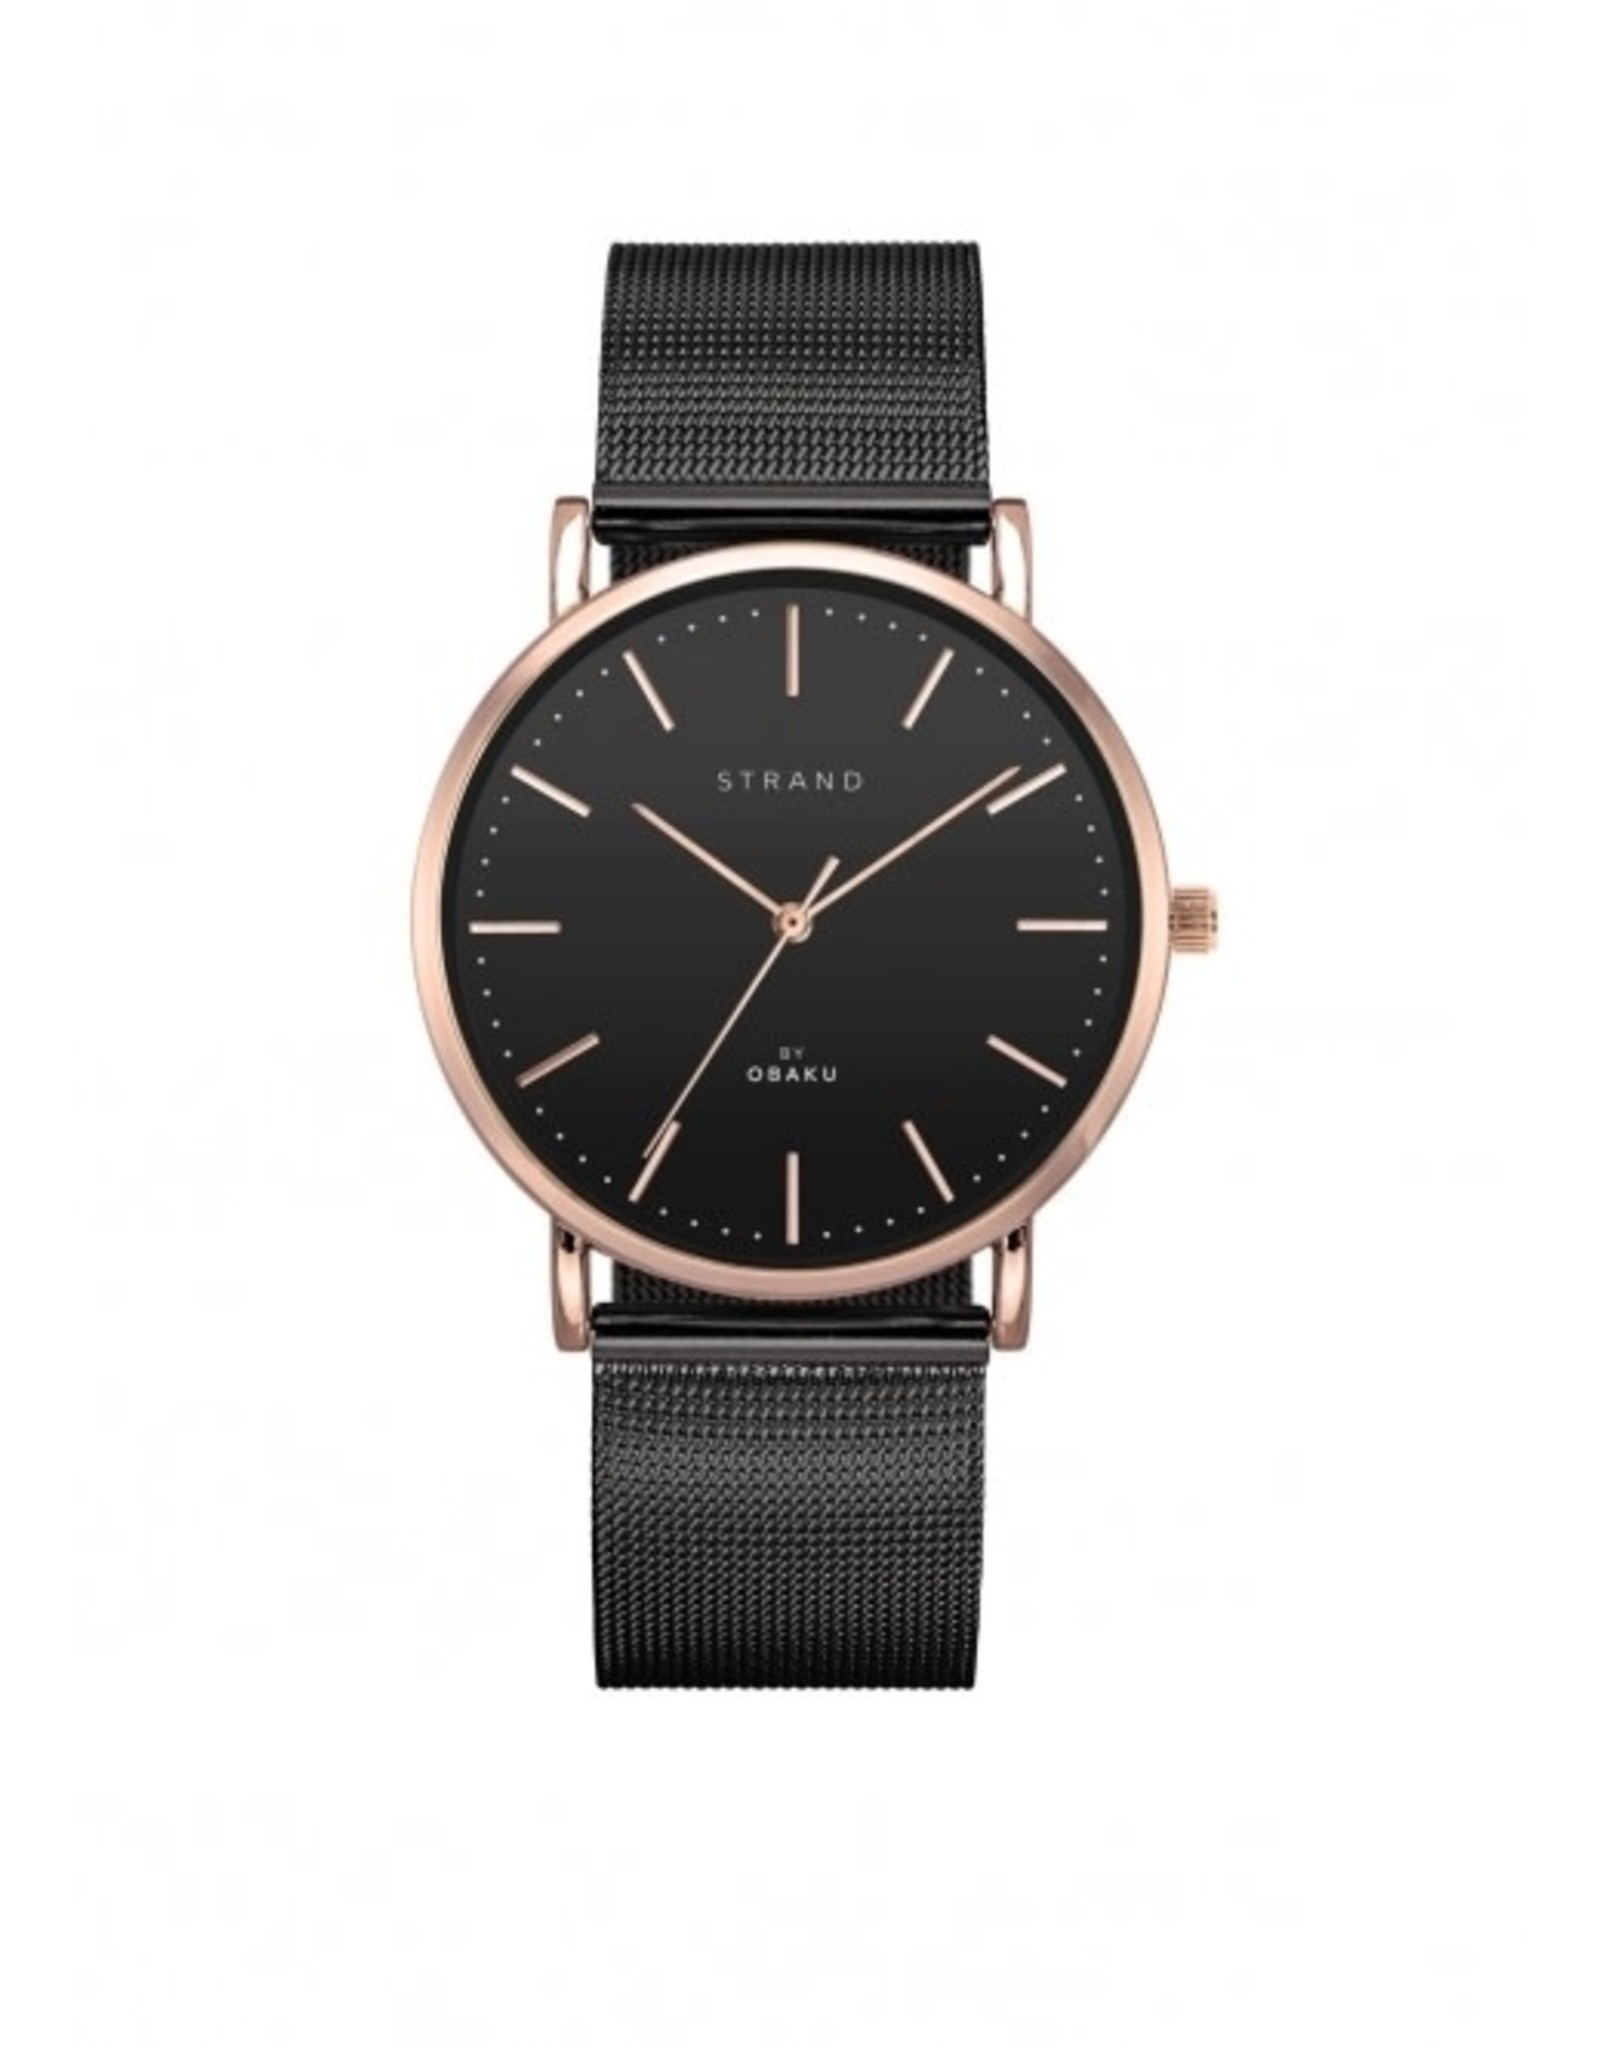 Strand by Obaku Montre Hudson - Noir & or rose